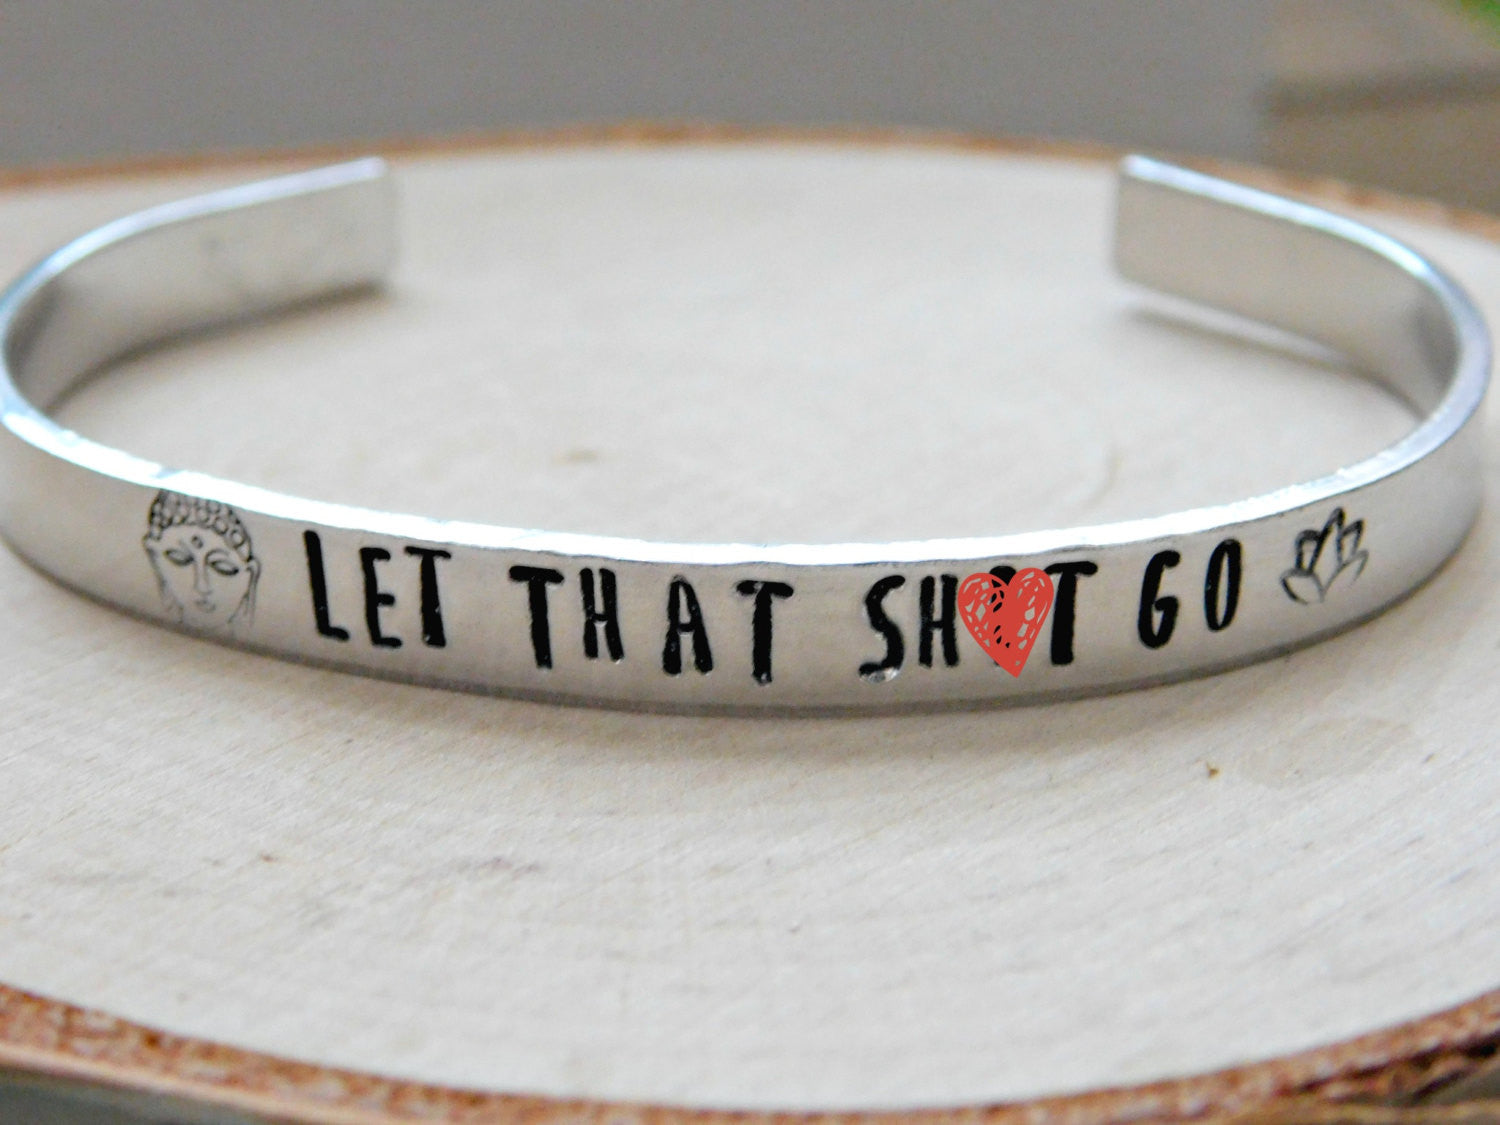 Let That Sh*t Go Bracelet Buddha Moving On Gift Stamped Lotus Meditation Yoga Zen Buddhist Mature